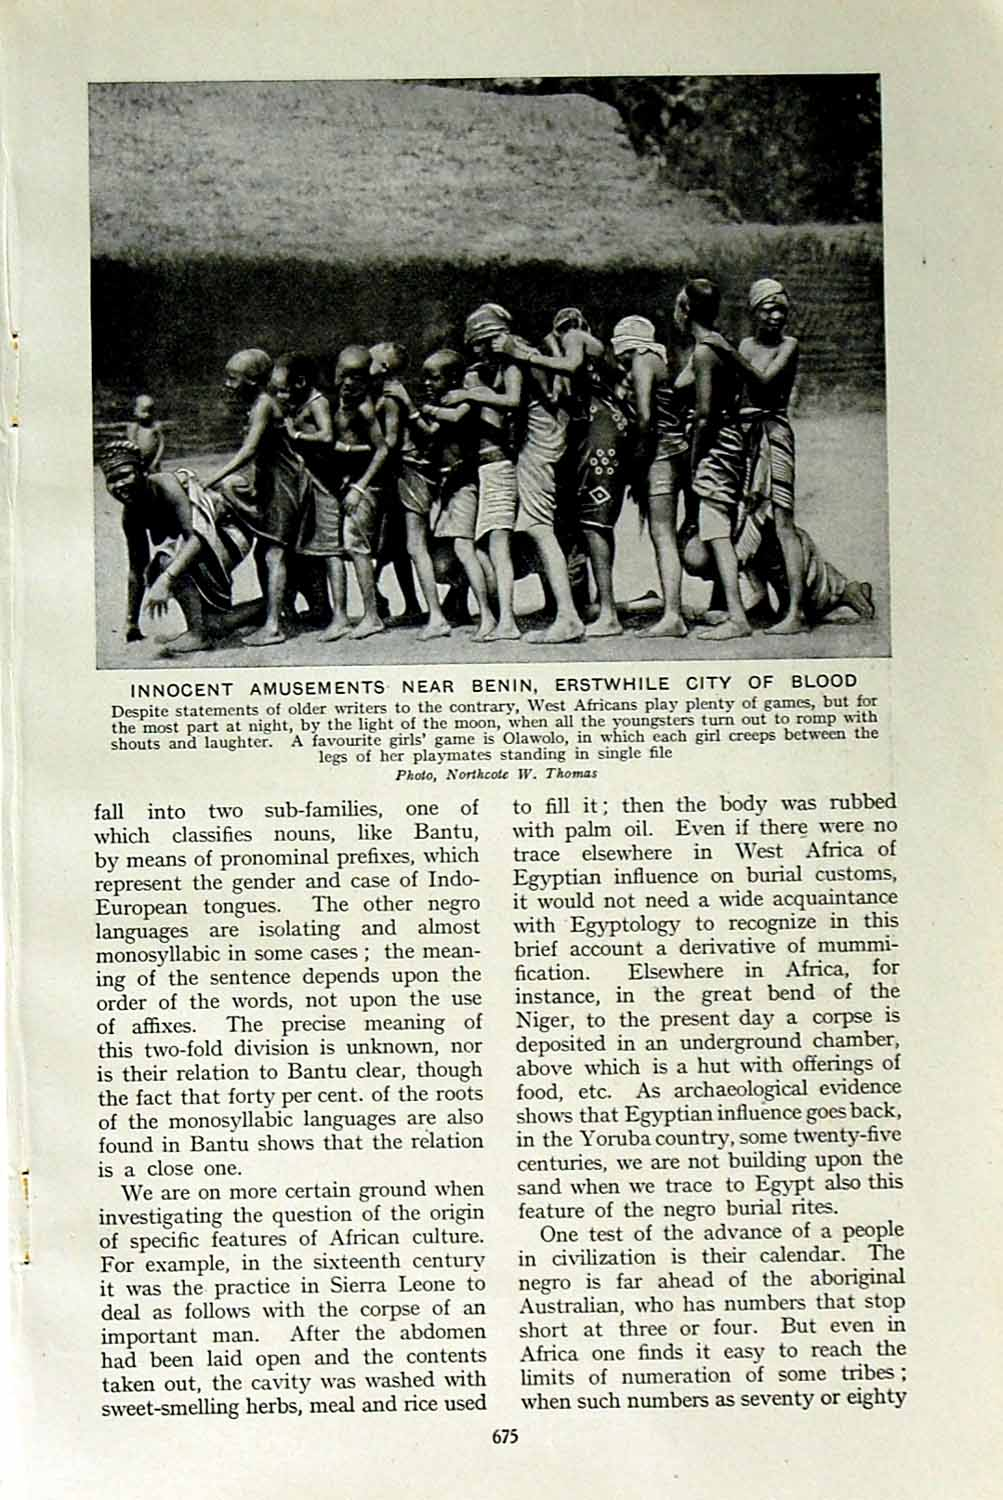 [Print C1920 Benin Erstwhile Africa City Blood Cercopithecus 675F151 Old Original]